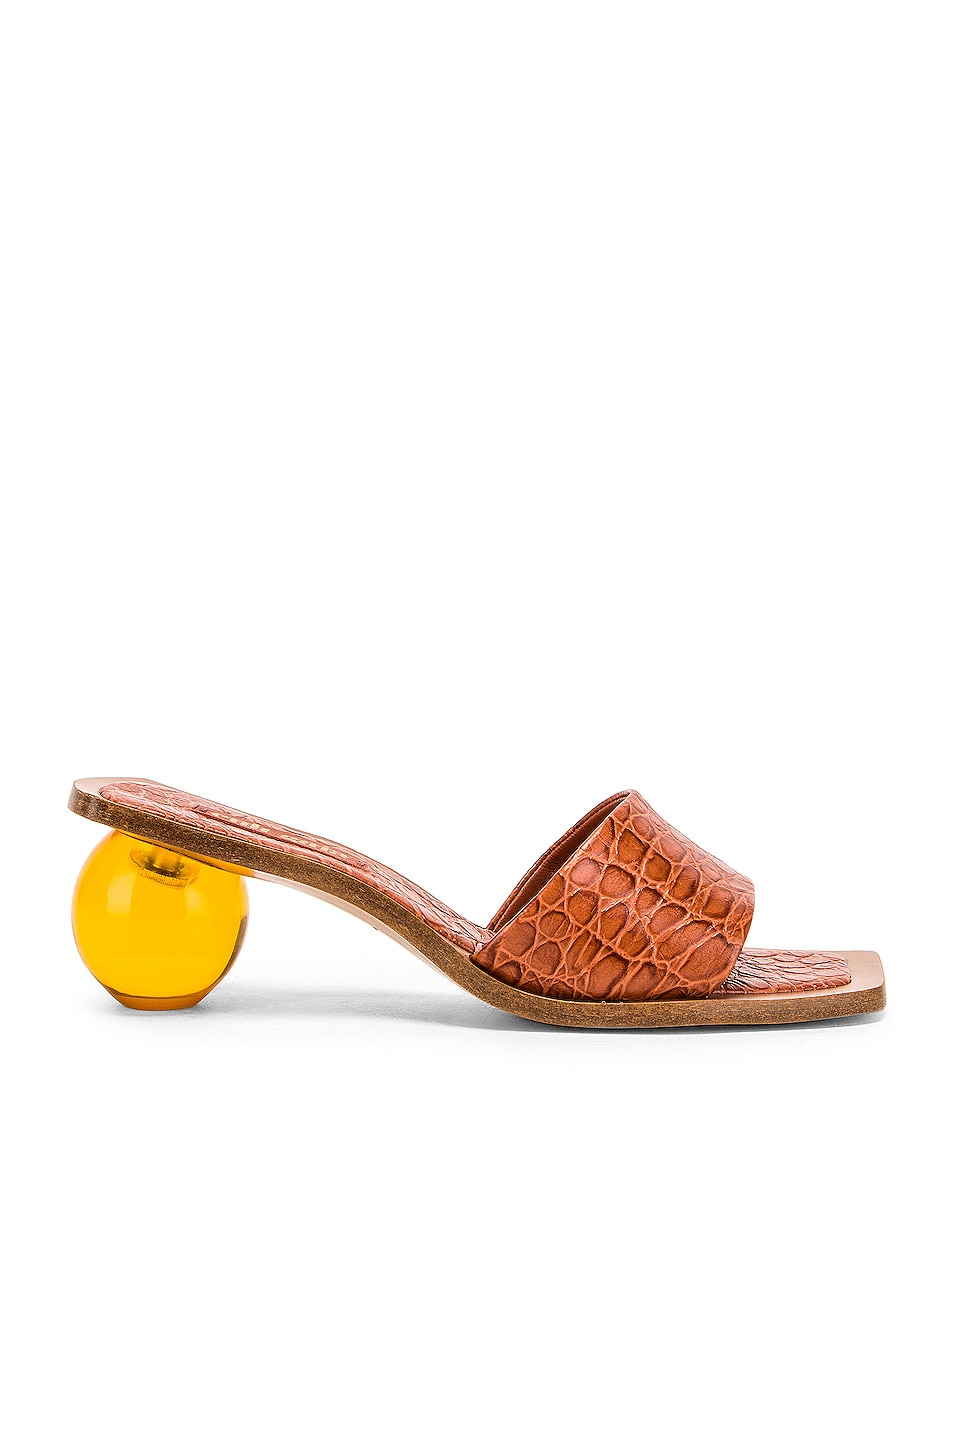 Image 1 of Cult Gaia Tao Sandal in Spice